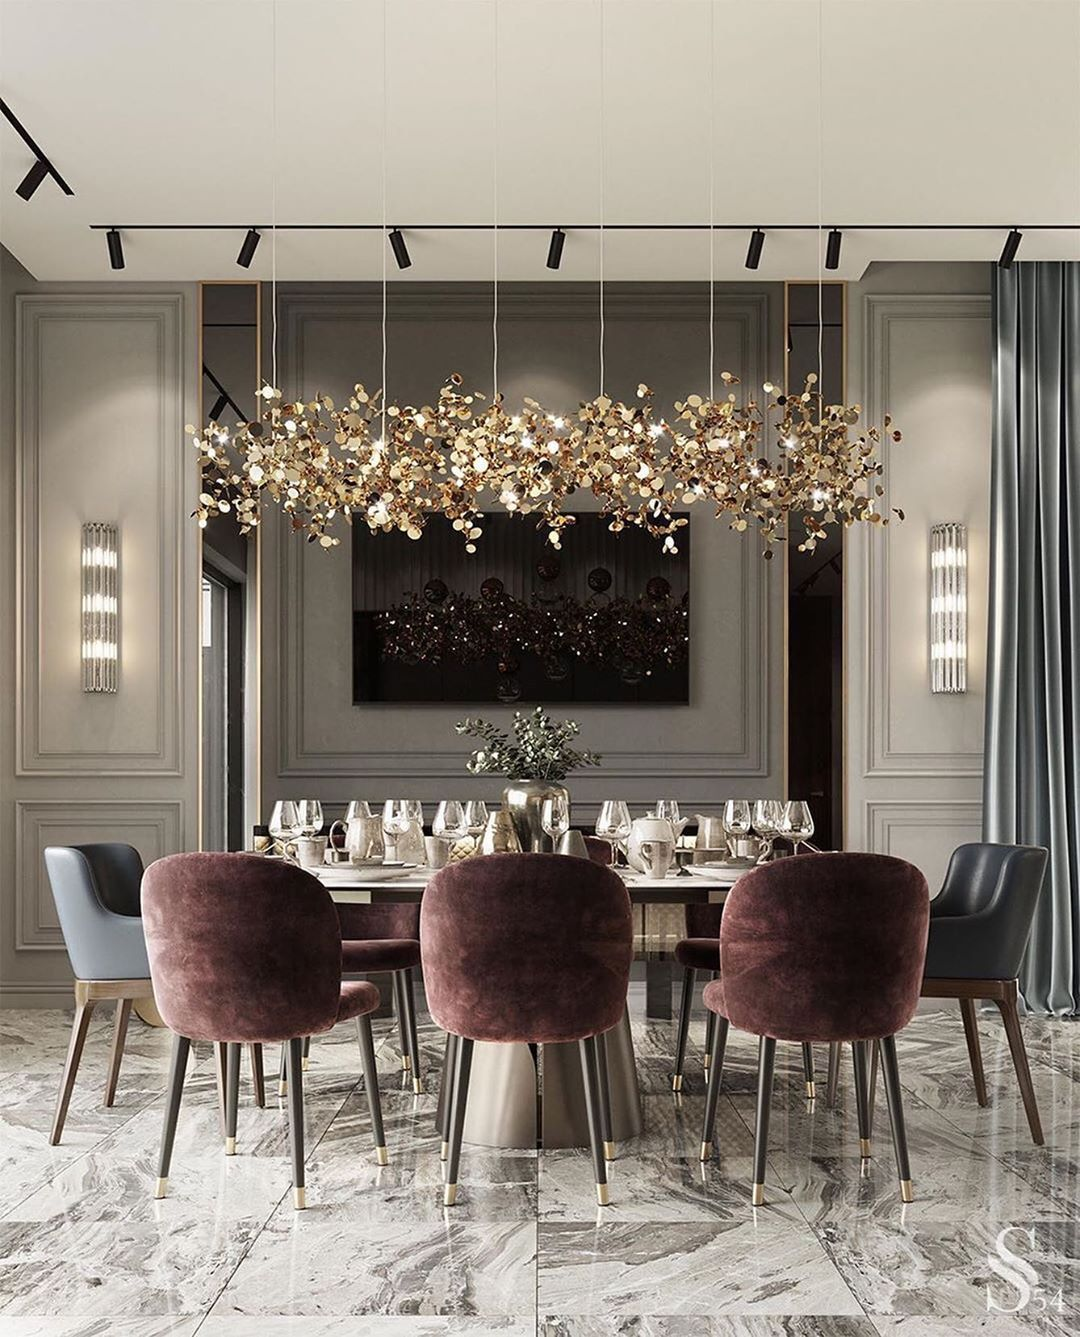 Luxury Interior By Aither On Instagram What A Classy Combination Of Modern Furniture With Gre Dining Room Design Modern Luxury Dining Room Modern Dining Room